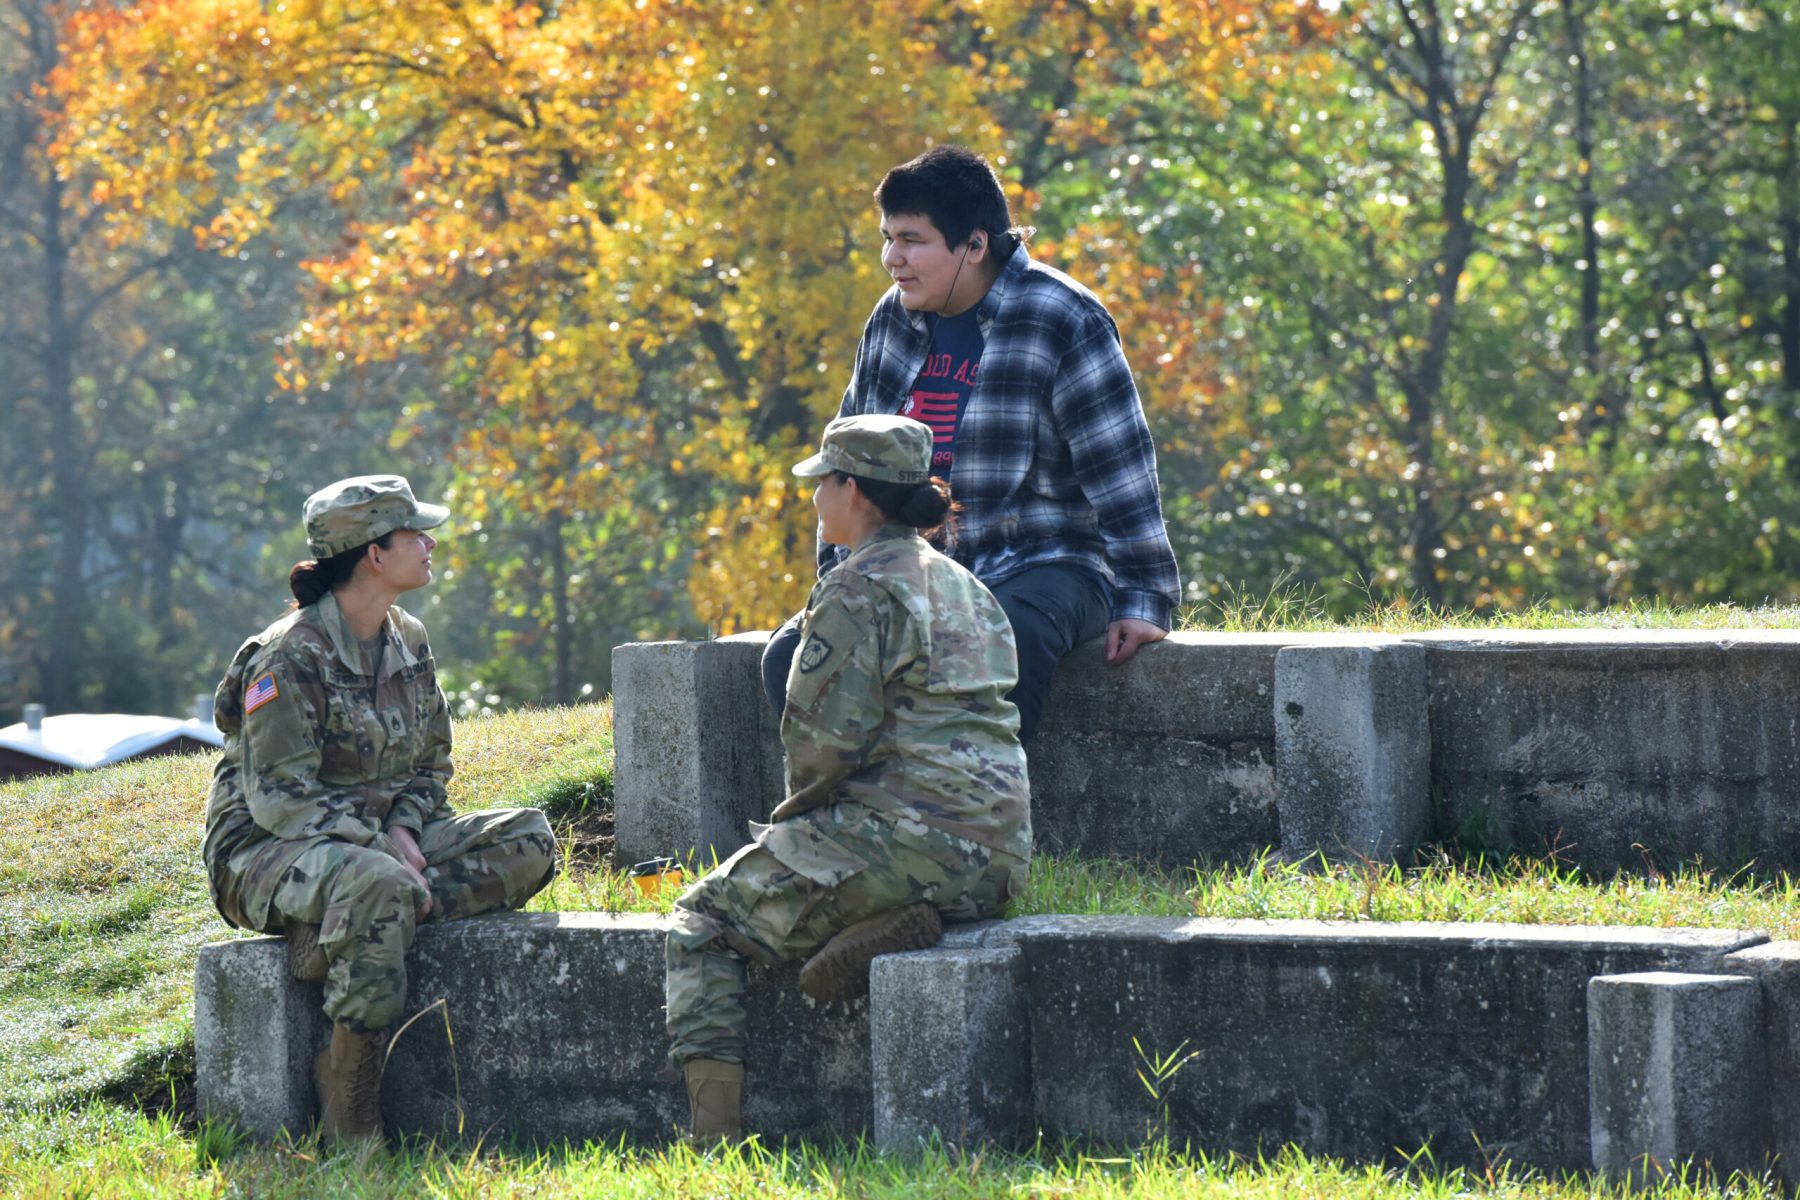 Minnesota National Guard Sgt. First Class Jessica Stiffarm (left) and Staff Sgt. Jennifer Stiffarm (right) share stories with a Mille Lacs Band of Ojibwe student from Onamia High School Sept. 20, 2019 during a 'Planting for the Future' cultural and informational exchange event on Camp Ripley.